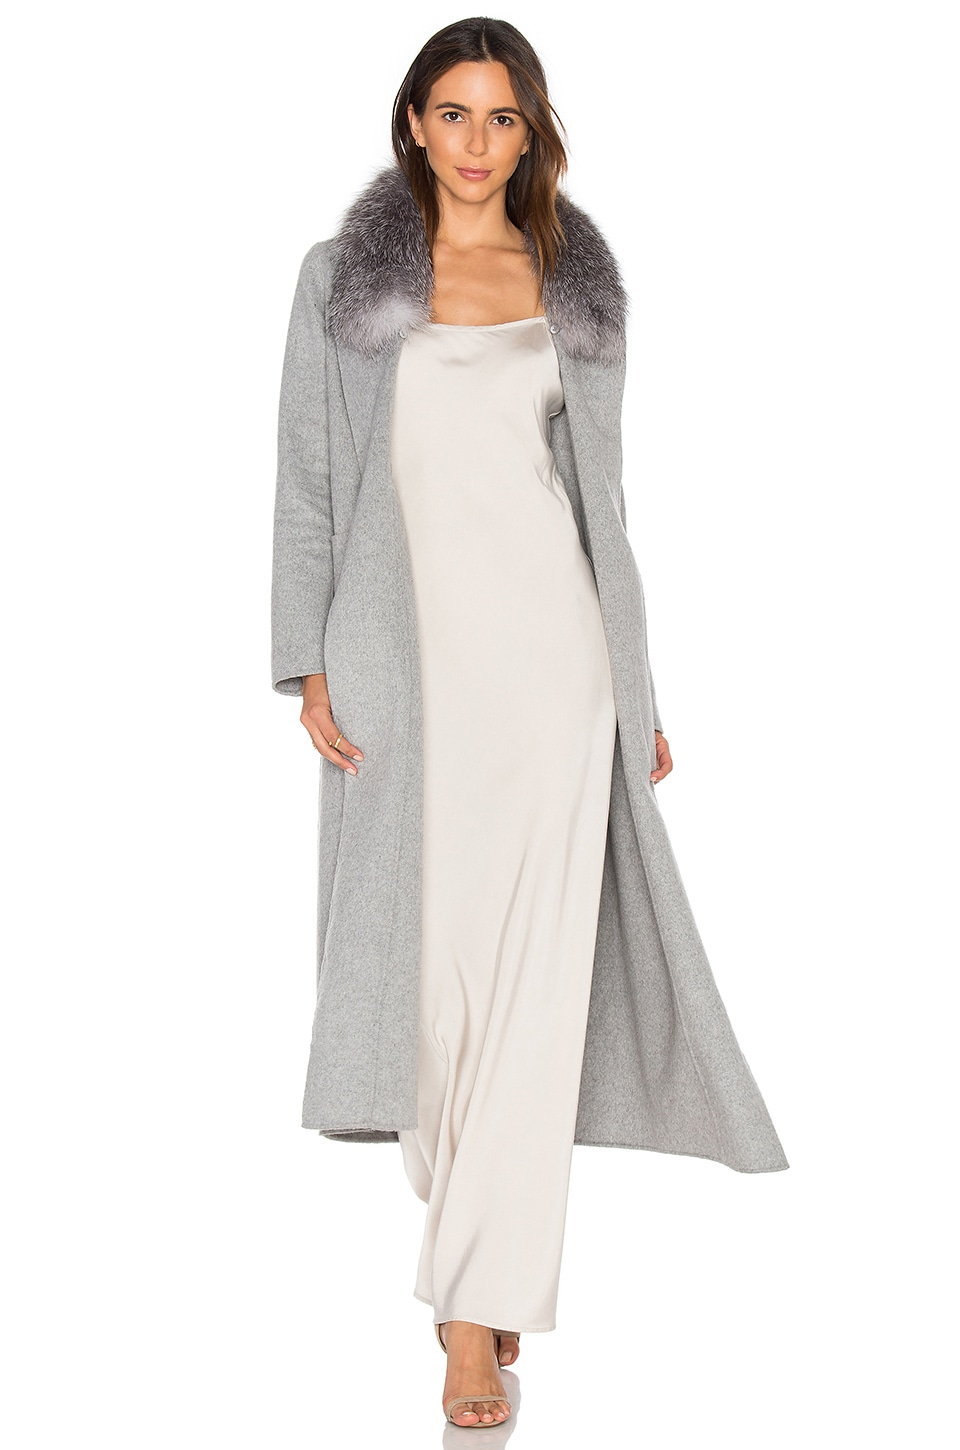 Soia & Kyo Daphne Coat with Silver Fox Fur Trim in Ash